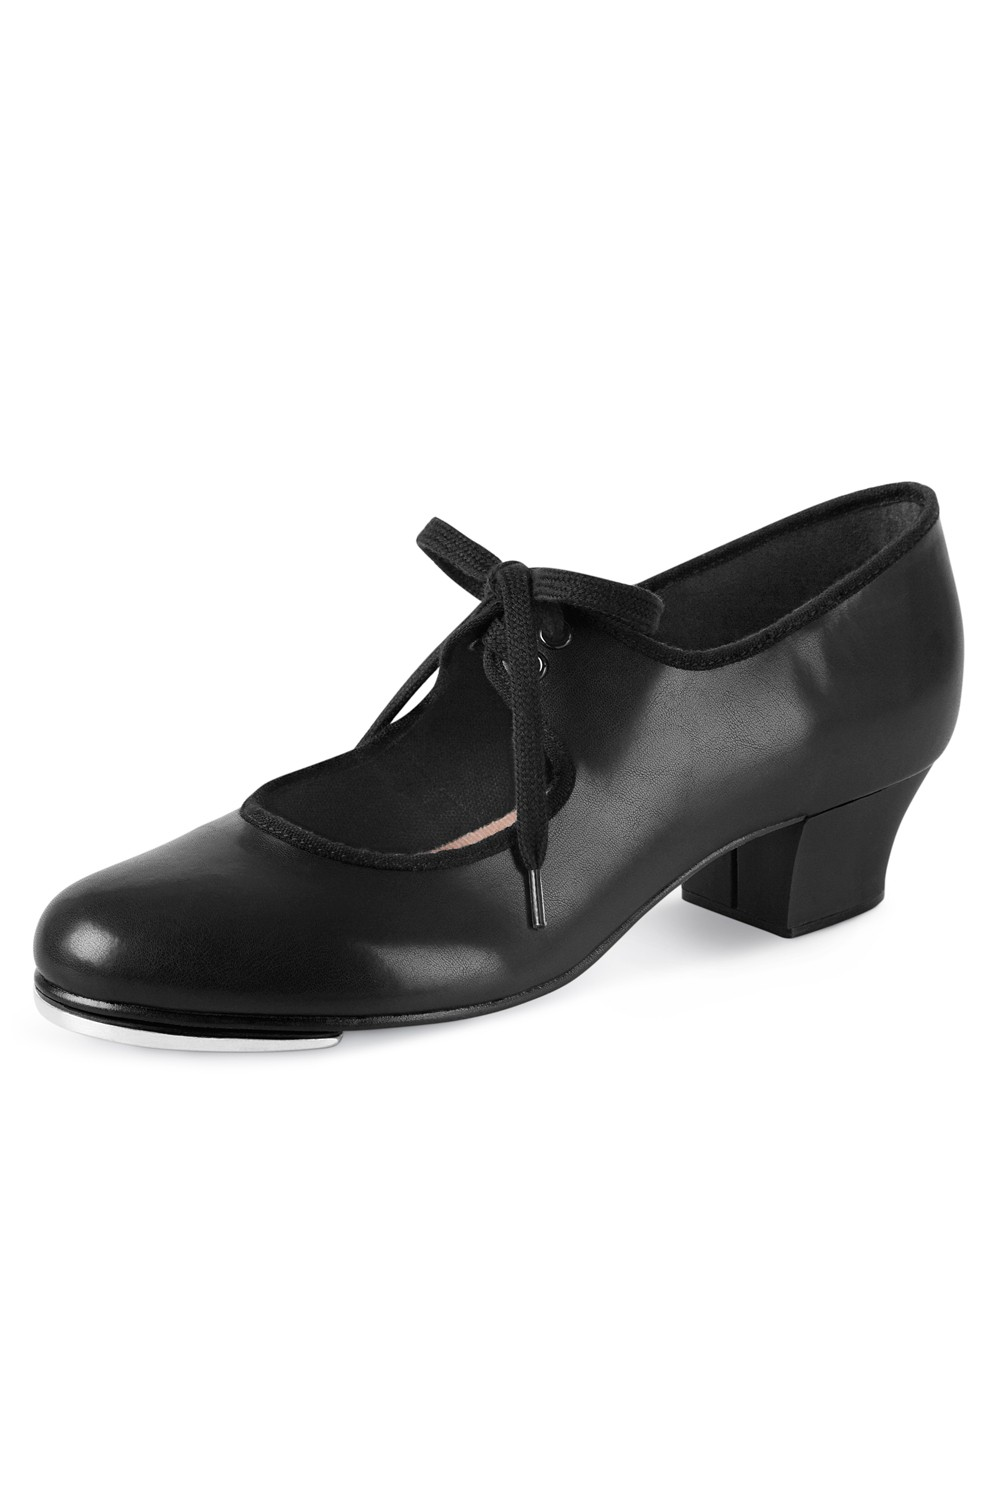 Raven Tie-up - Pu Women's Tap Shoes